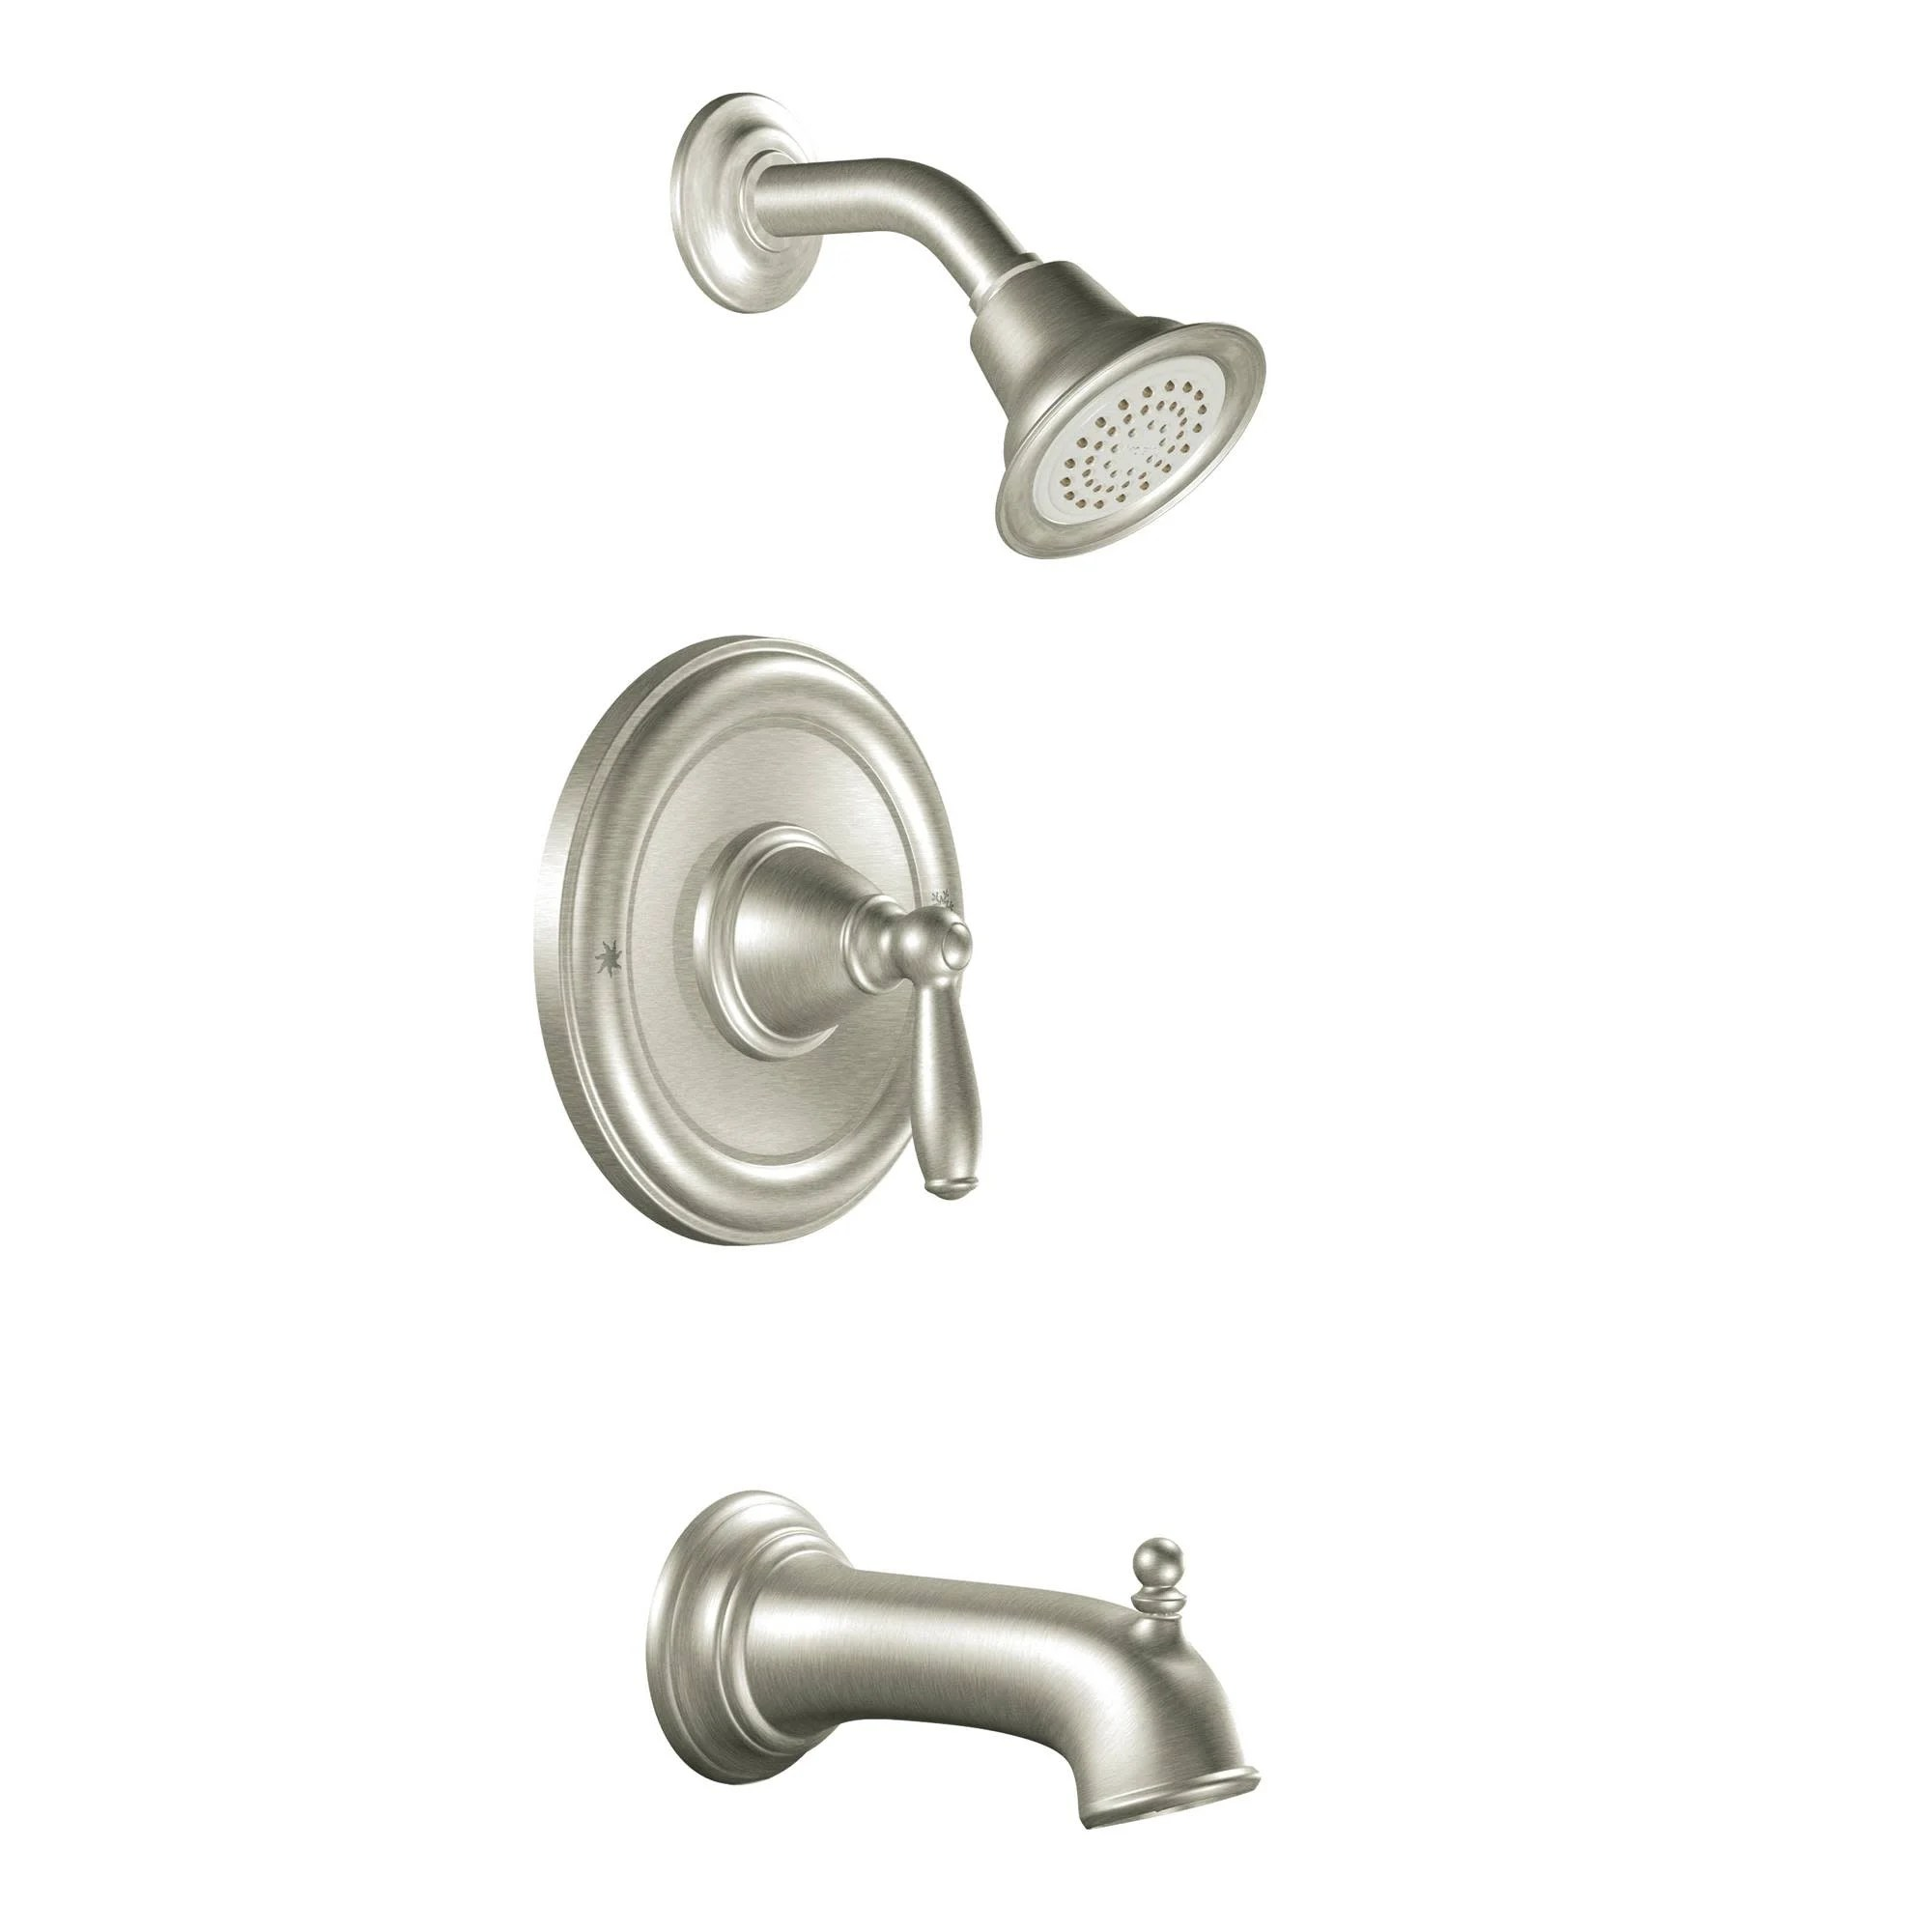 Moen T2153 Posi Temp Pressure Balanced Tub And Shower Trim With 2 5 Gpm Shower Head And Tub Spout From The Brantford Collection